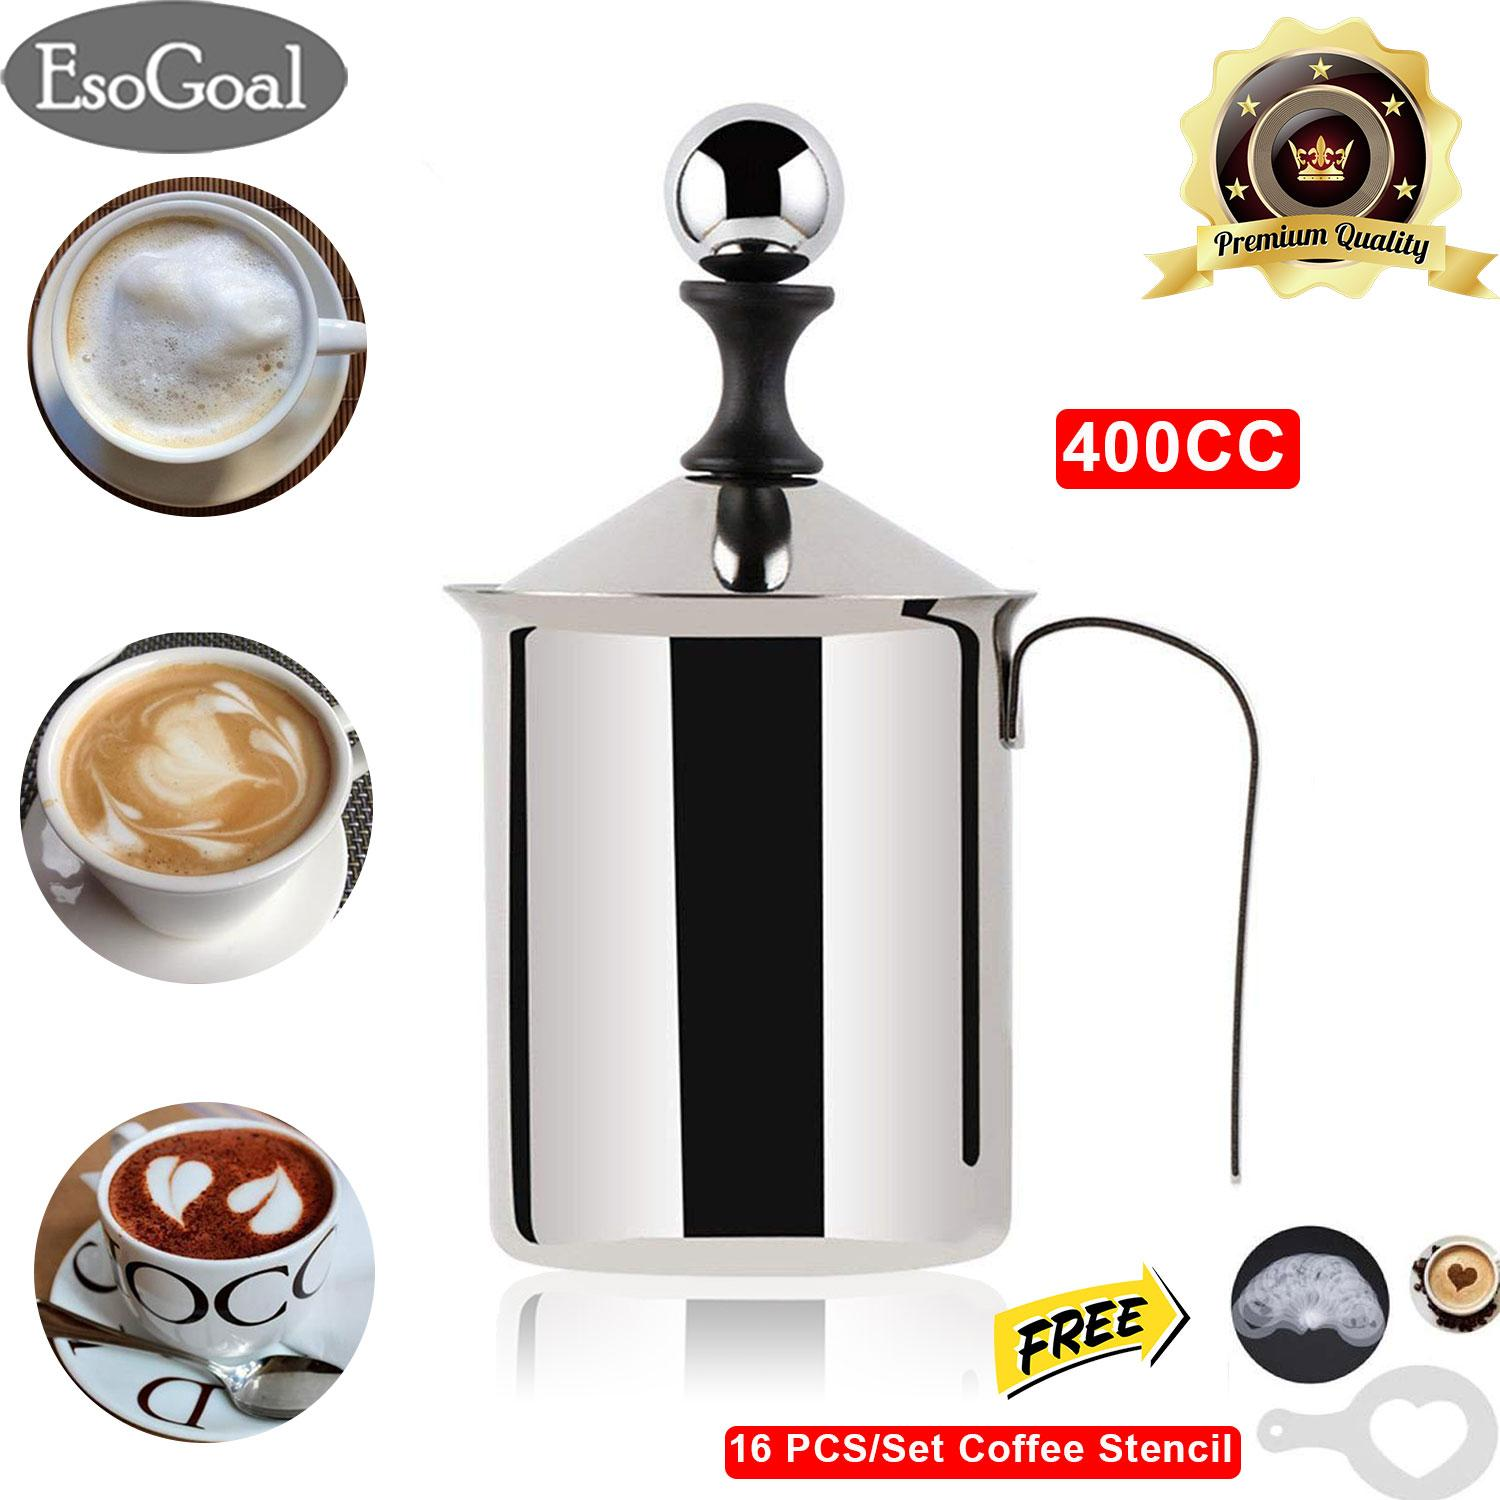 Esogoal Manual Milk Frother Foamer Stainless Steel Cappuccino Coffee Creamer Foam Pitcher With Handle And Lid Double Mesh 400cc/800cc By Esogoal.